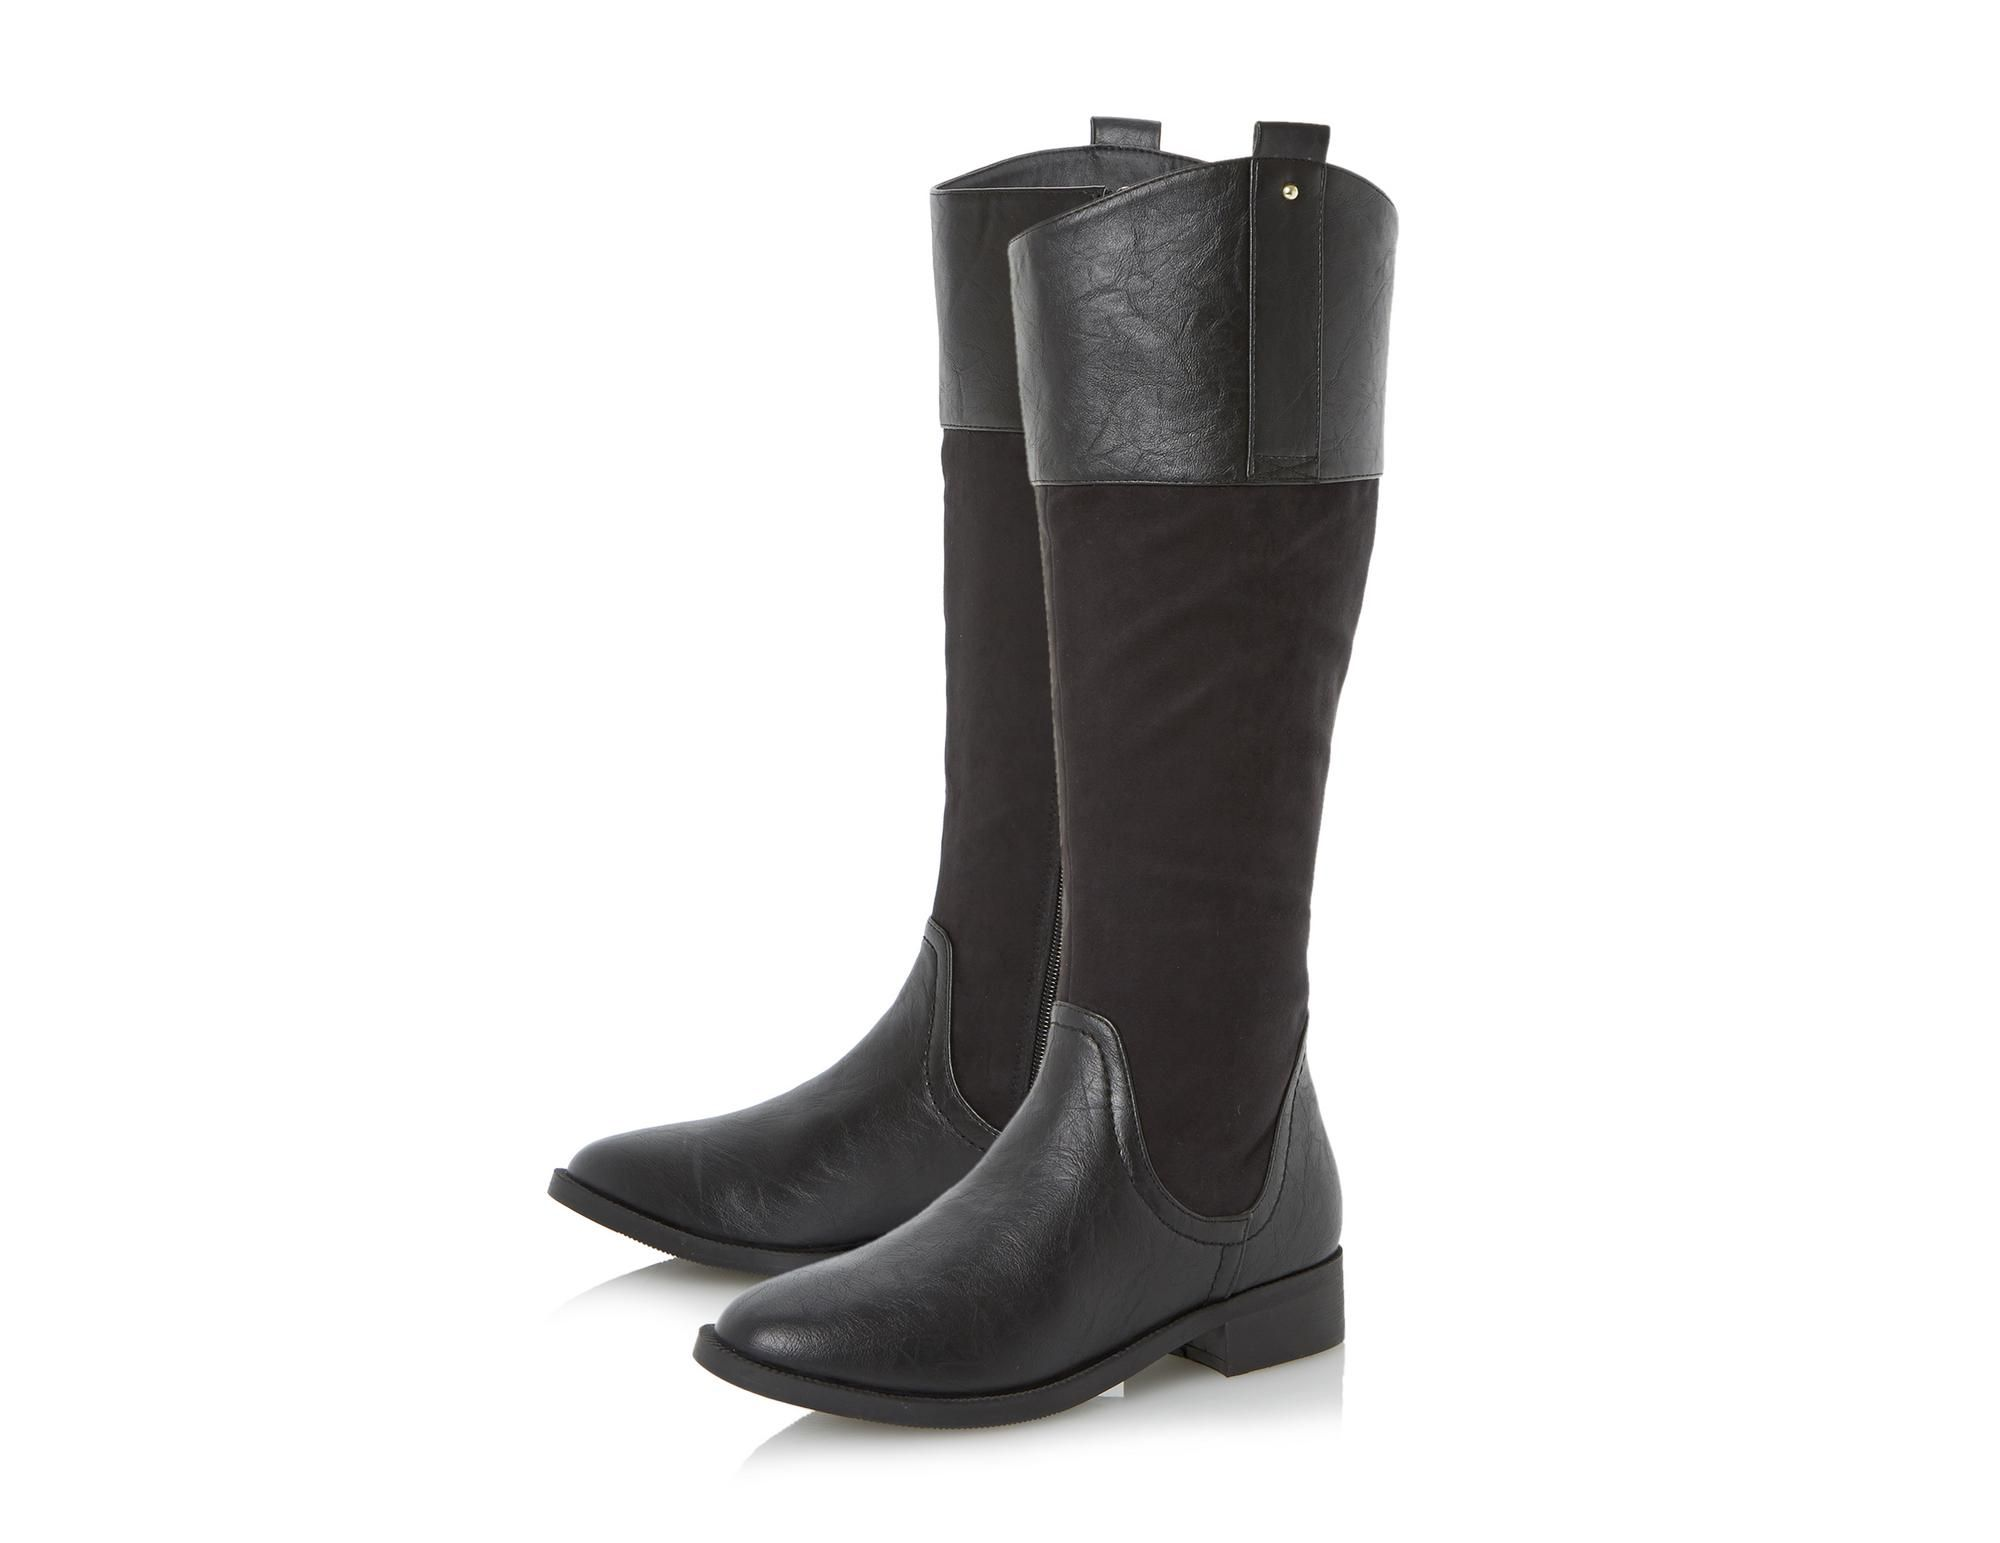 039545fbae0 Head Over Heels Ladies TILLY - Angled Collar Riding Boot - black ...